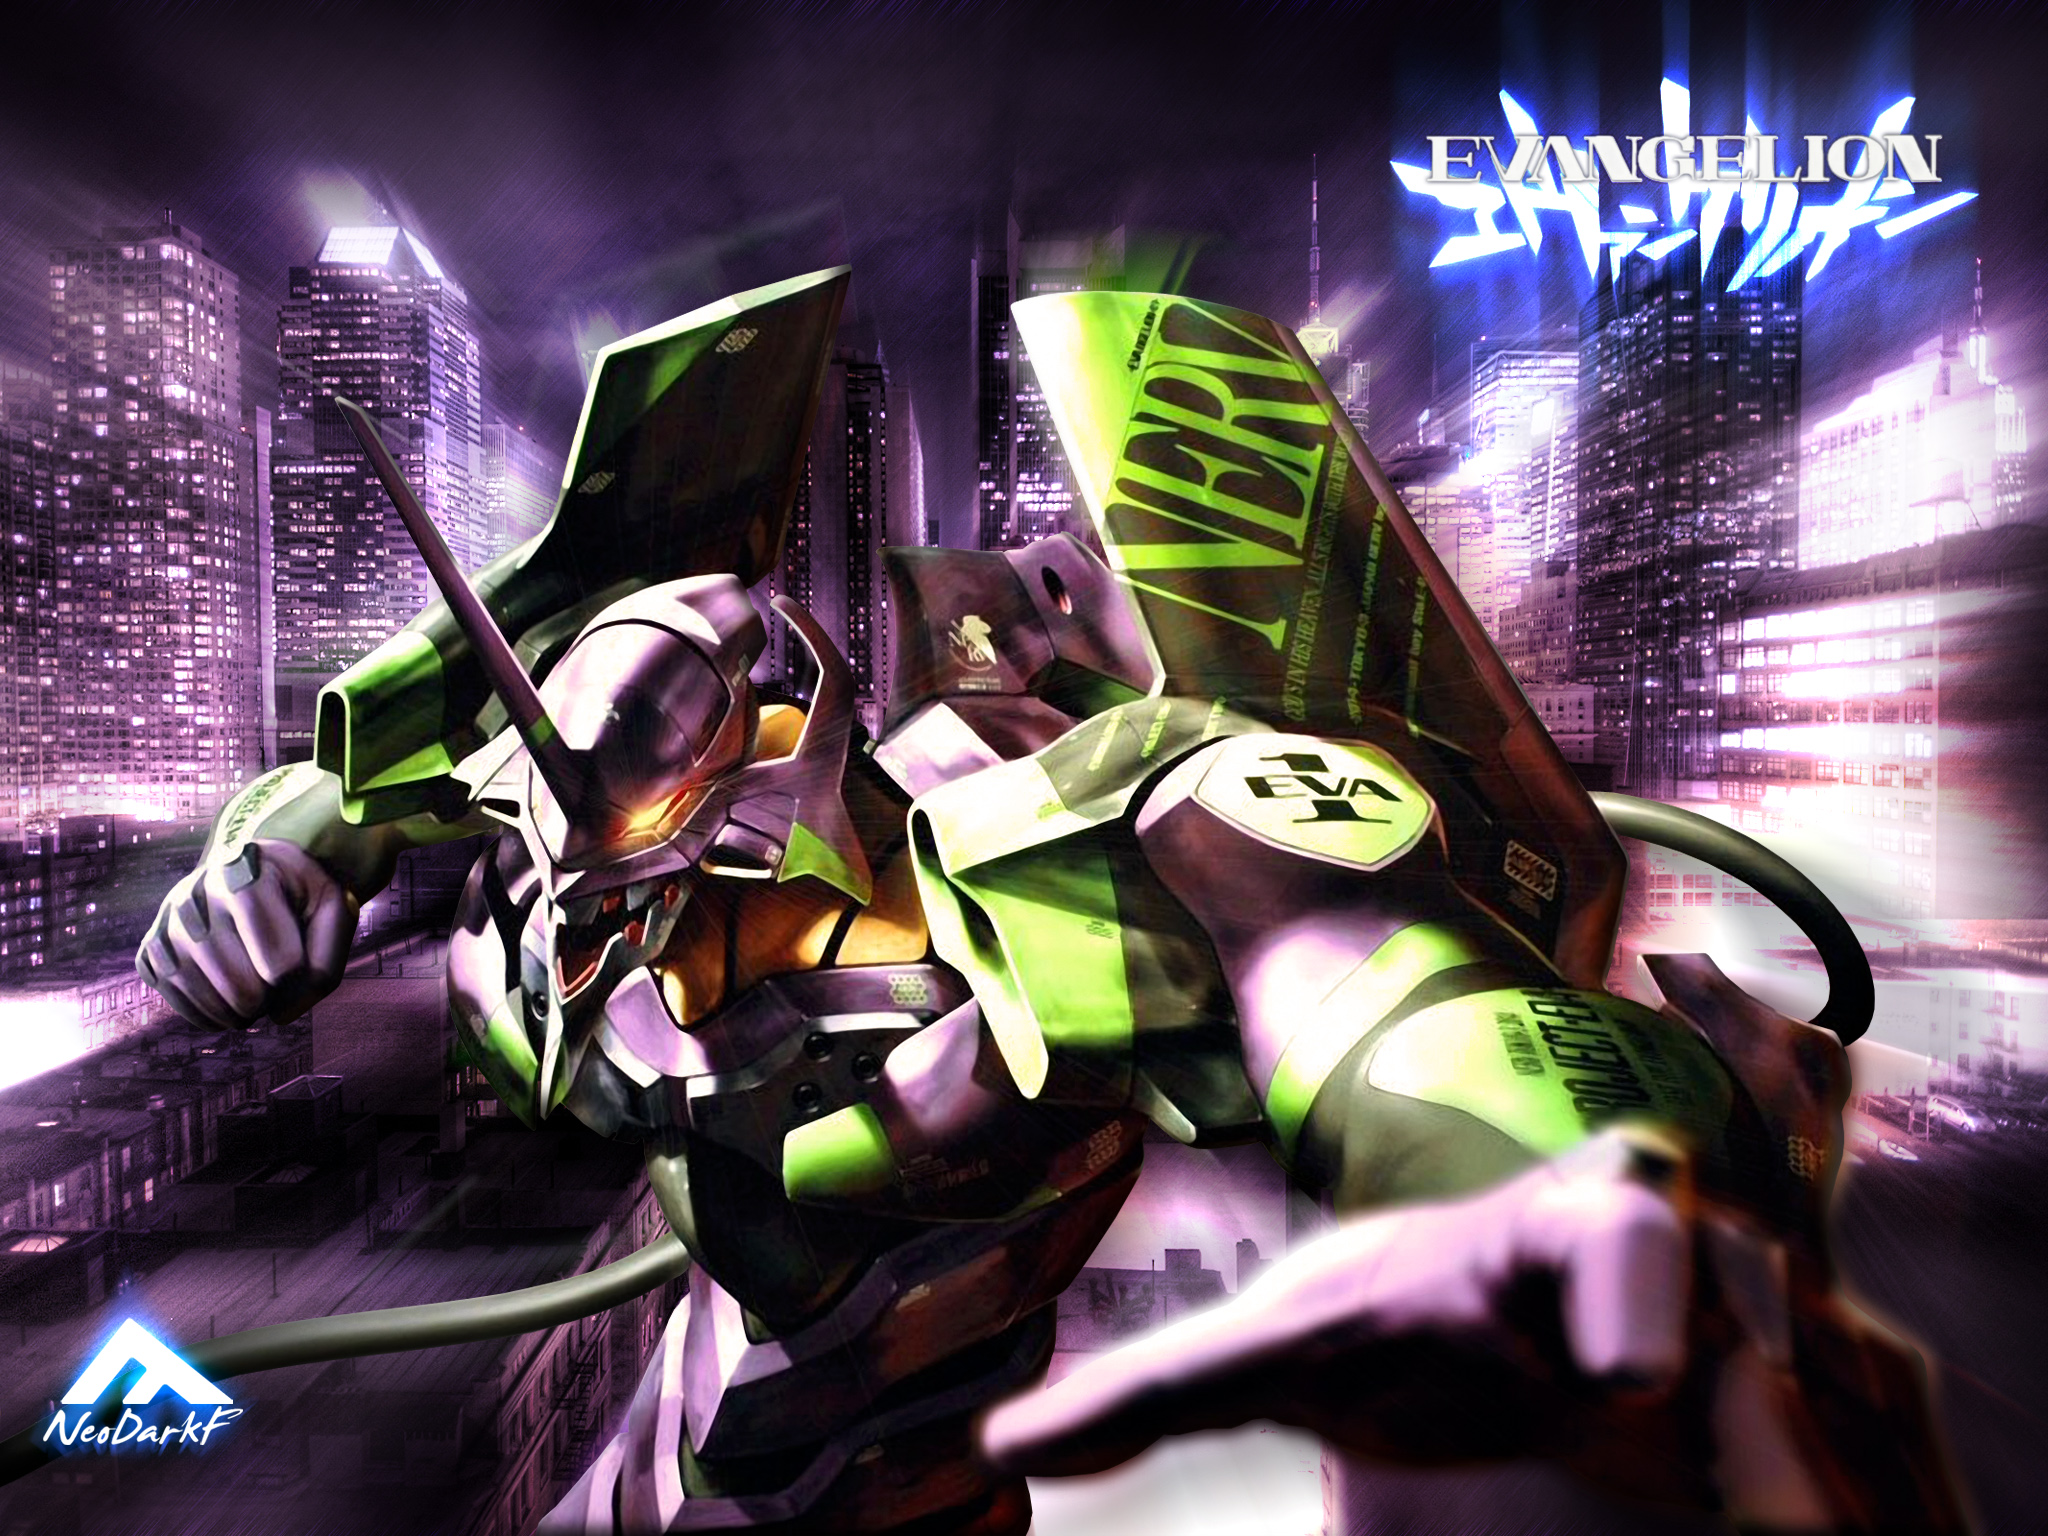 wallpaper-Evangelion-city-4.3-by-NeoDarkF